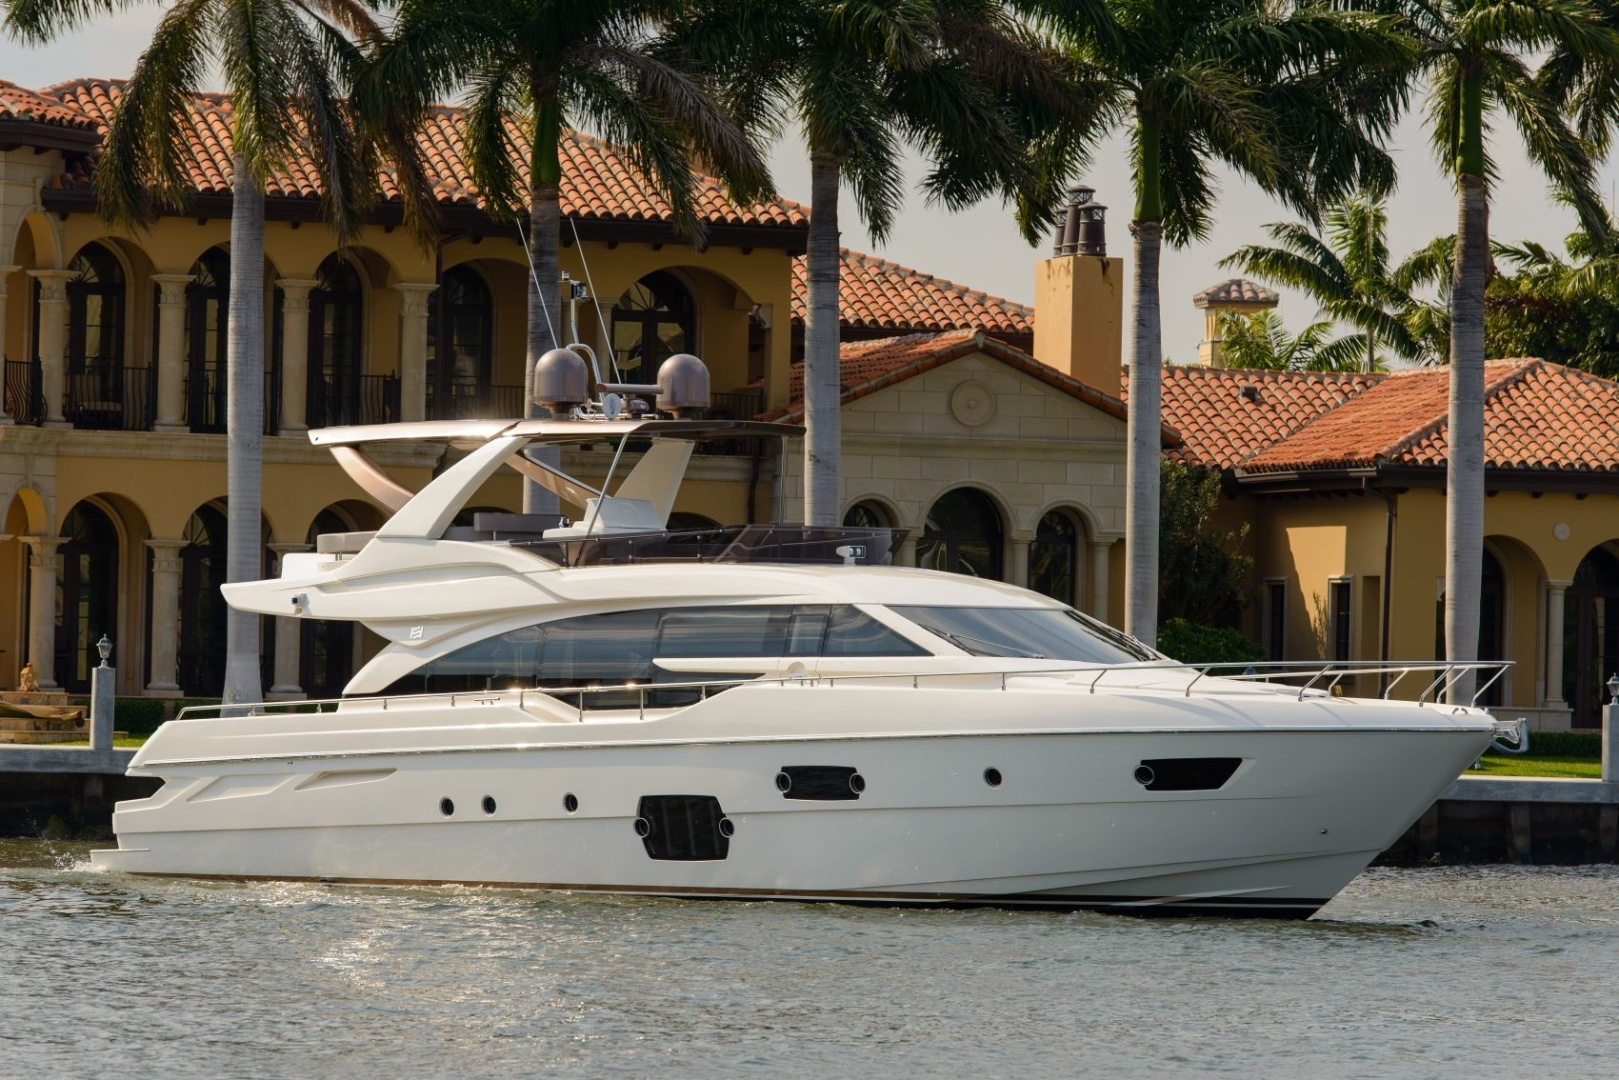 Blue Abalone is a Ferretti Yachts 690 Yacht For Sale in Cancun--0